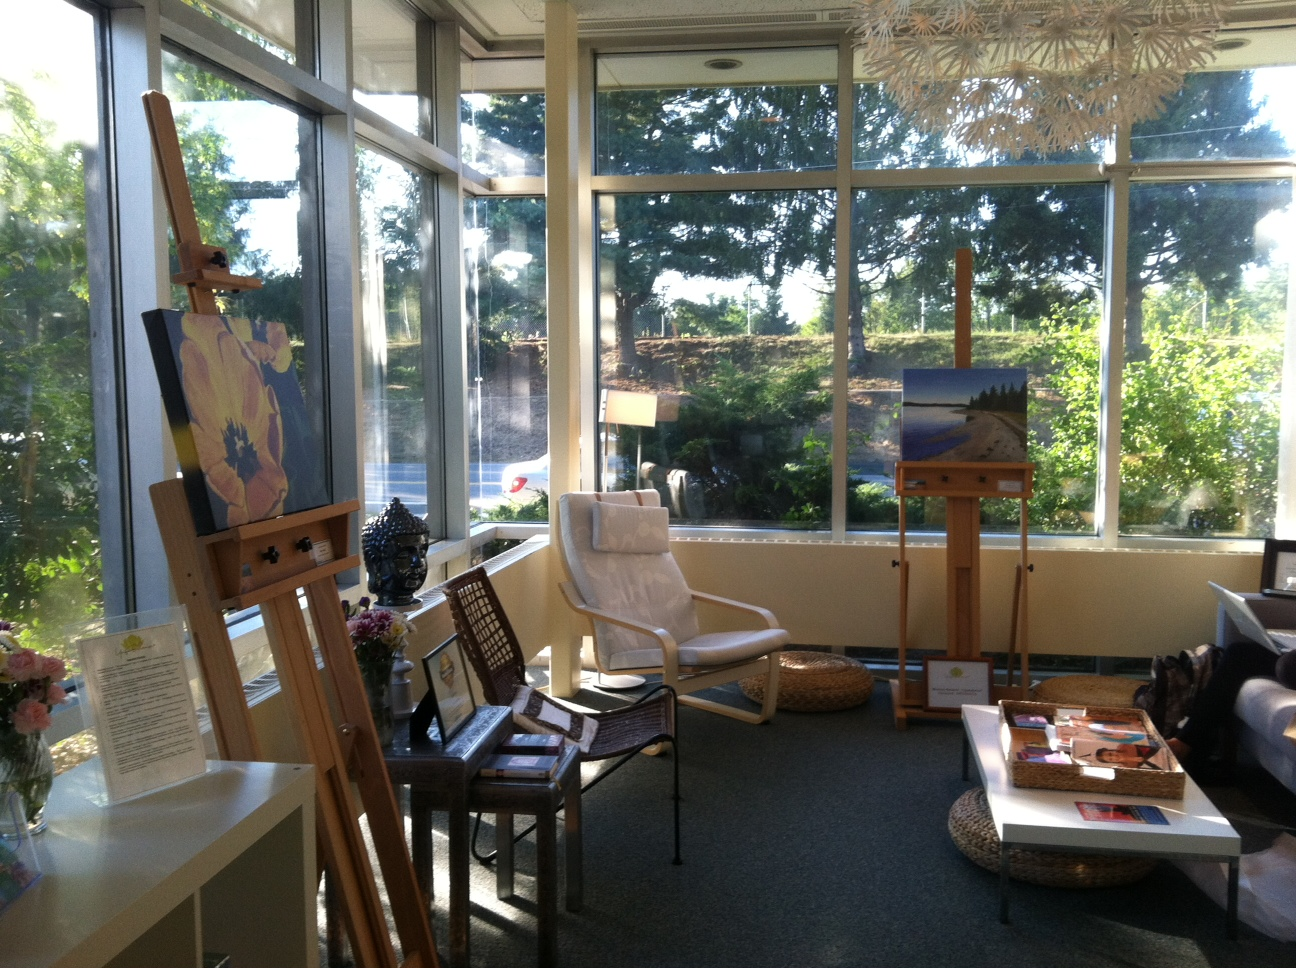 Artist of the Month at YogaBalance Studio!